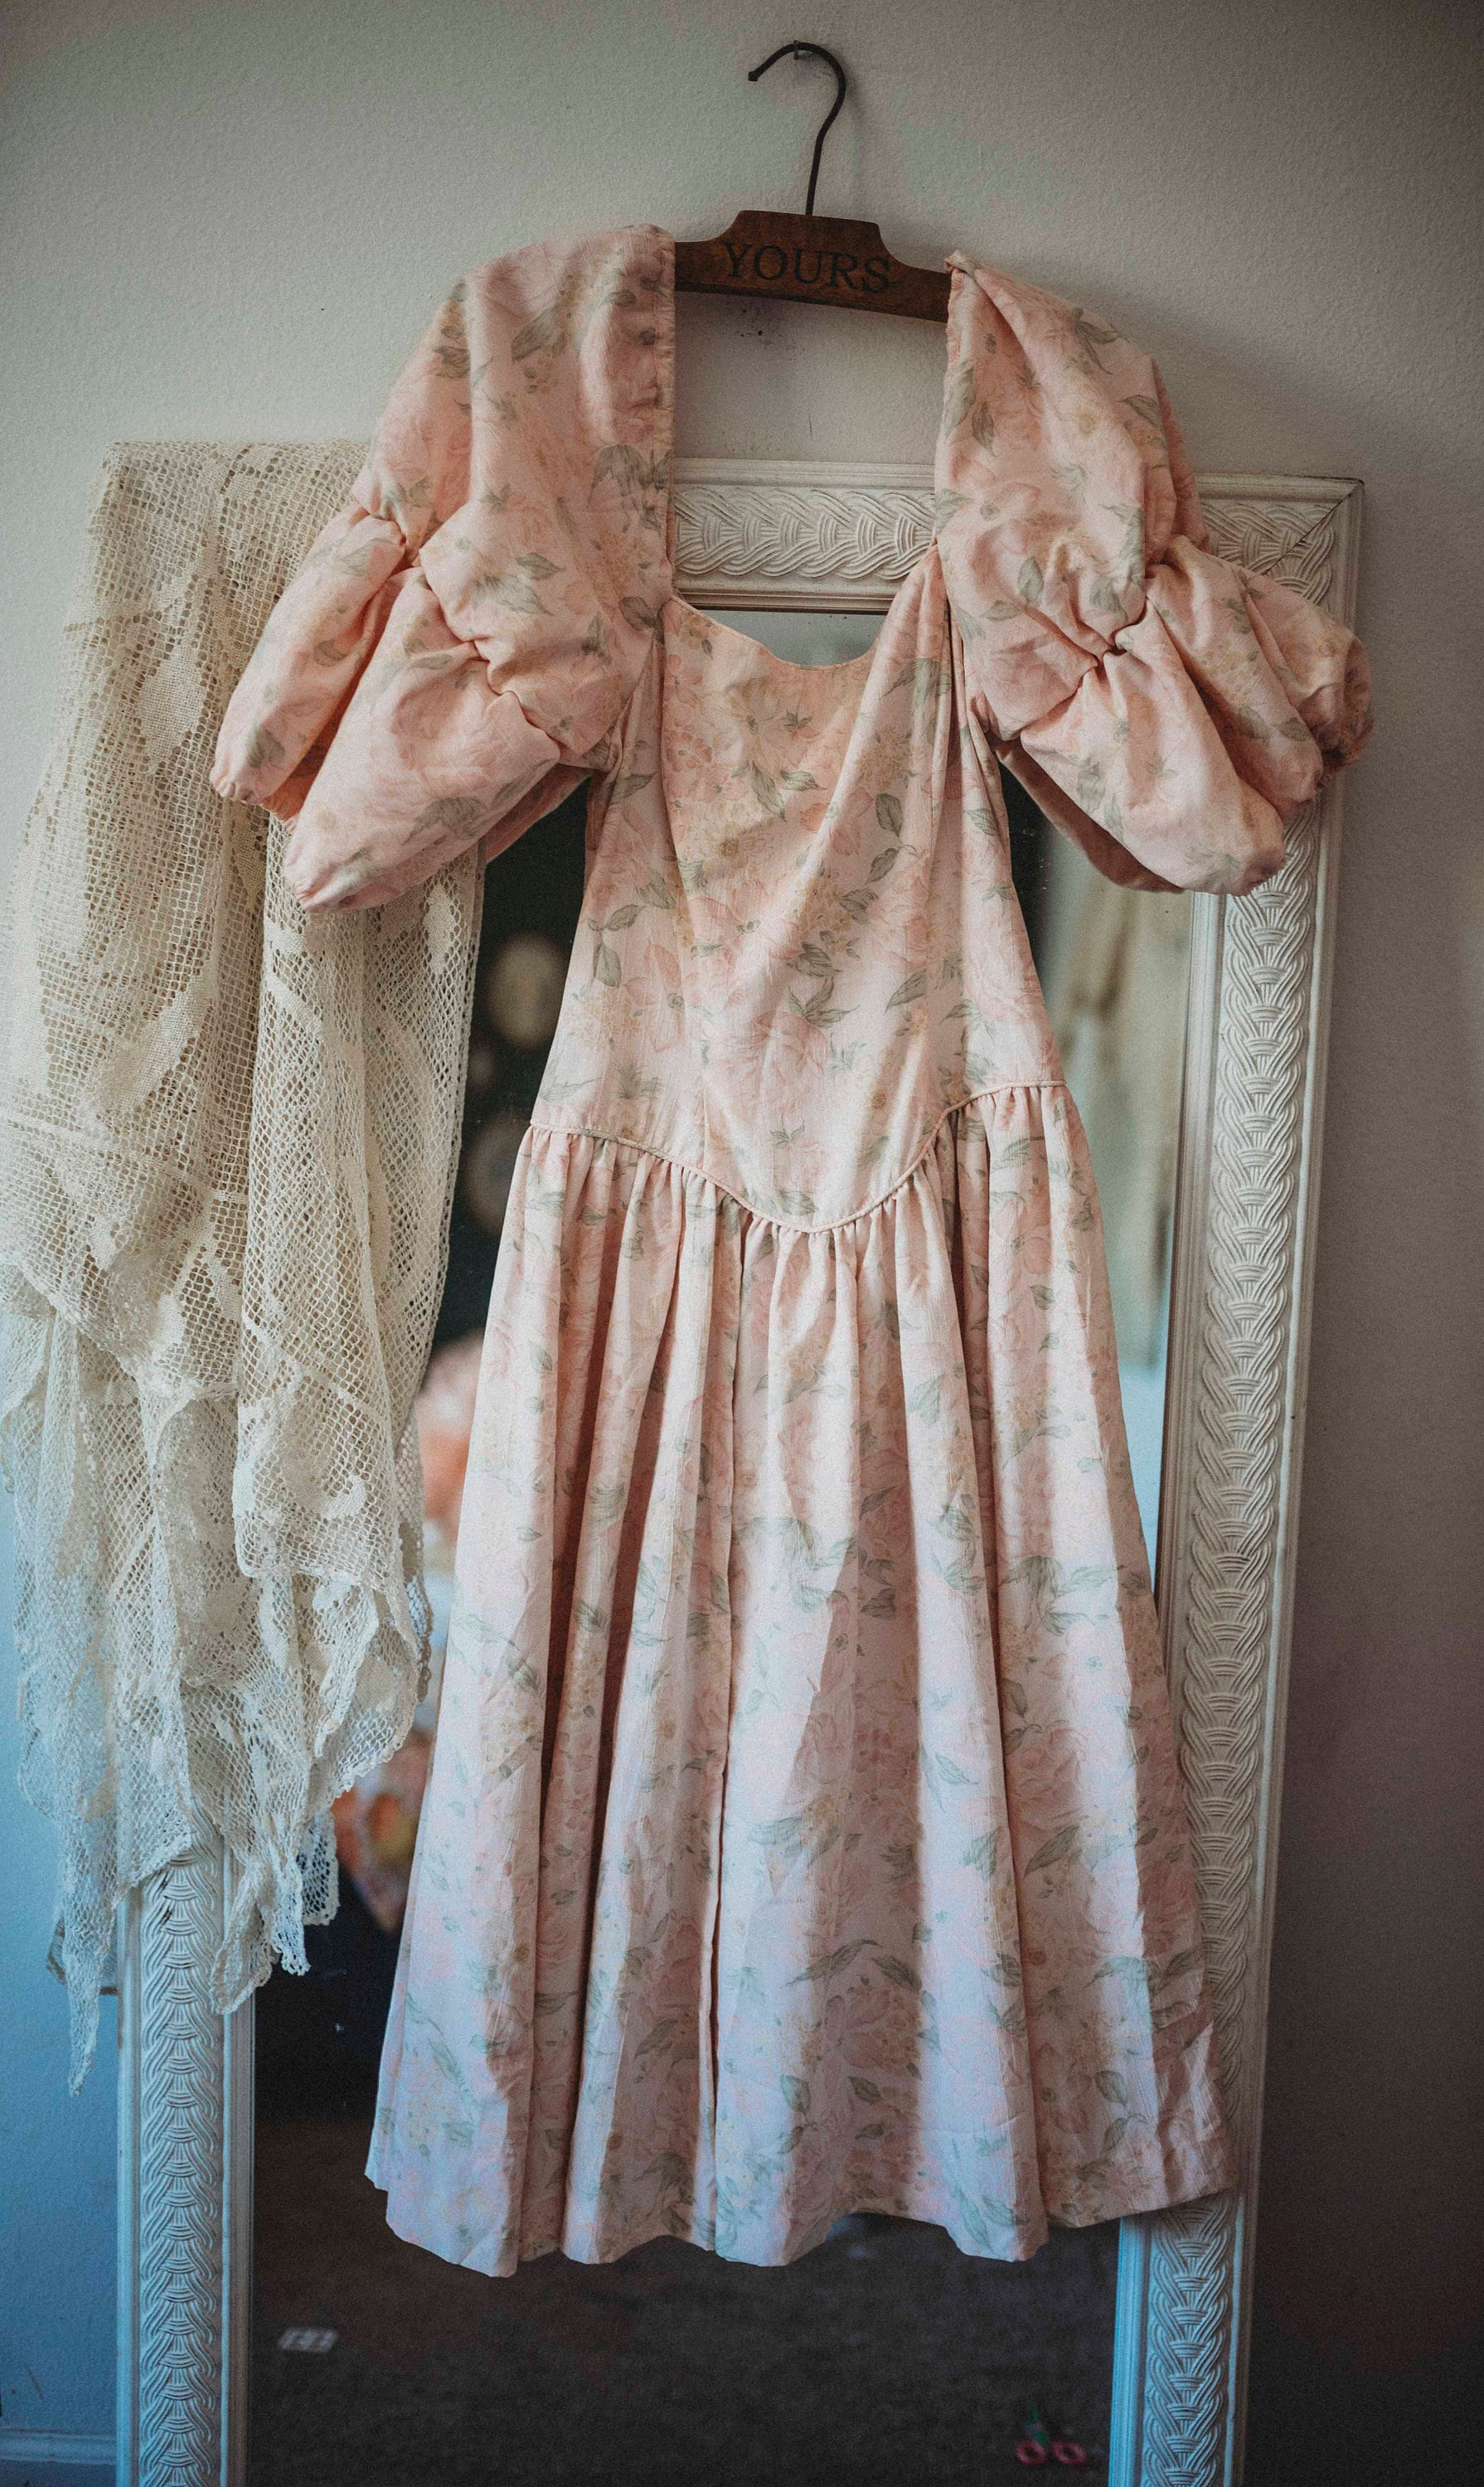 80s Dresses   Casual to Party Dresses Vintage Pretty in Pink Dress  1980S Boho Gown Romance $5.00 AT vintagedancer.com